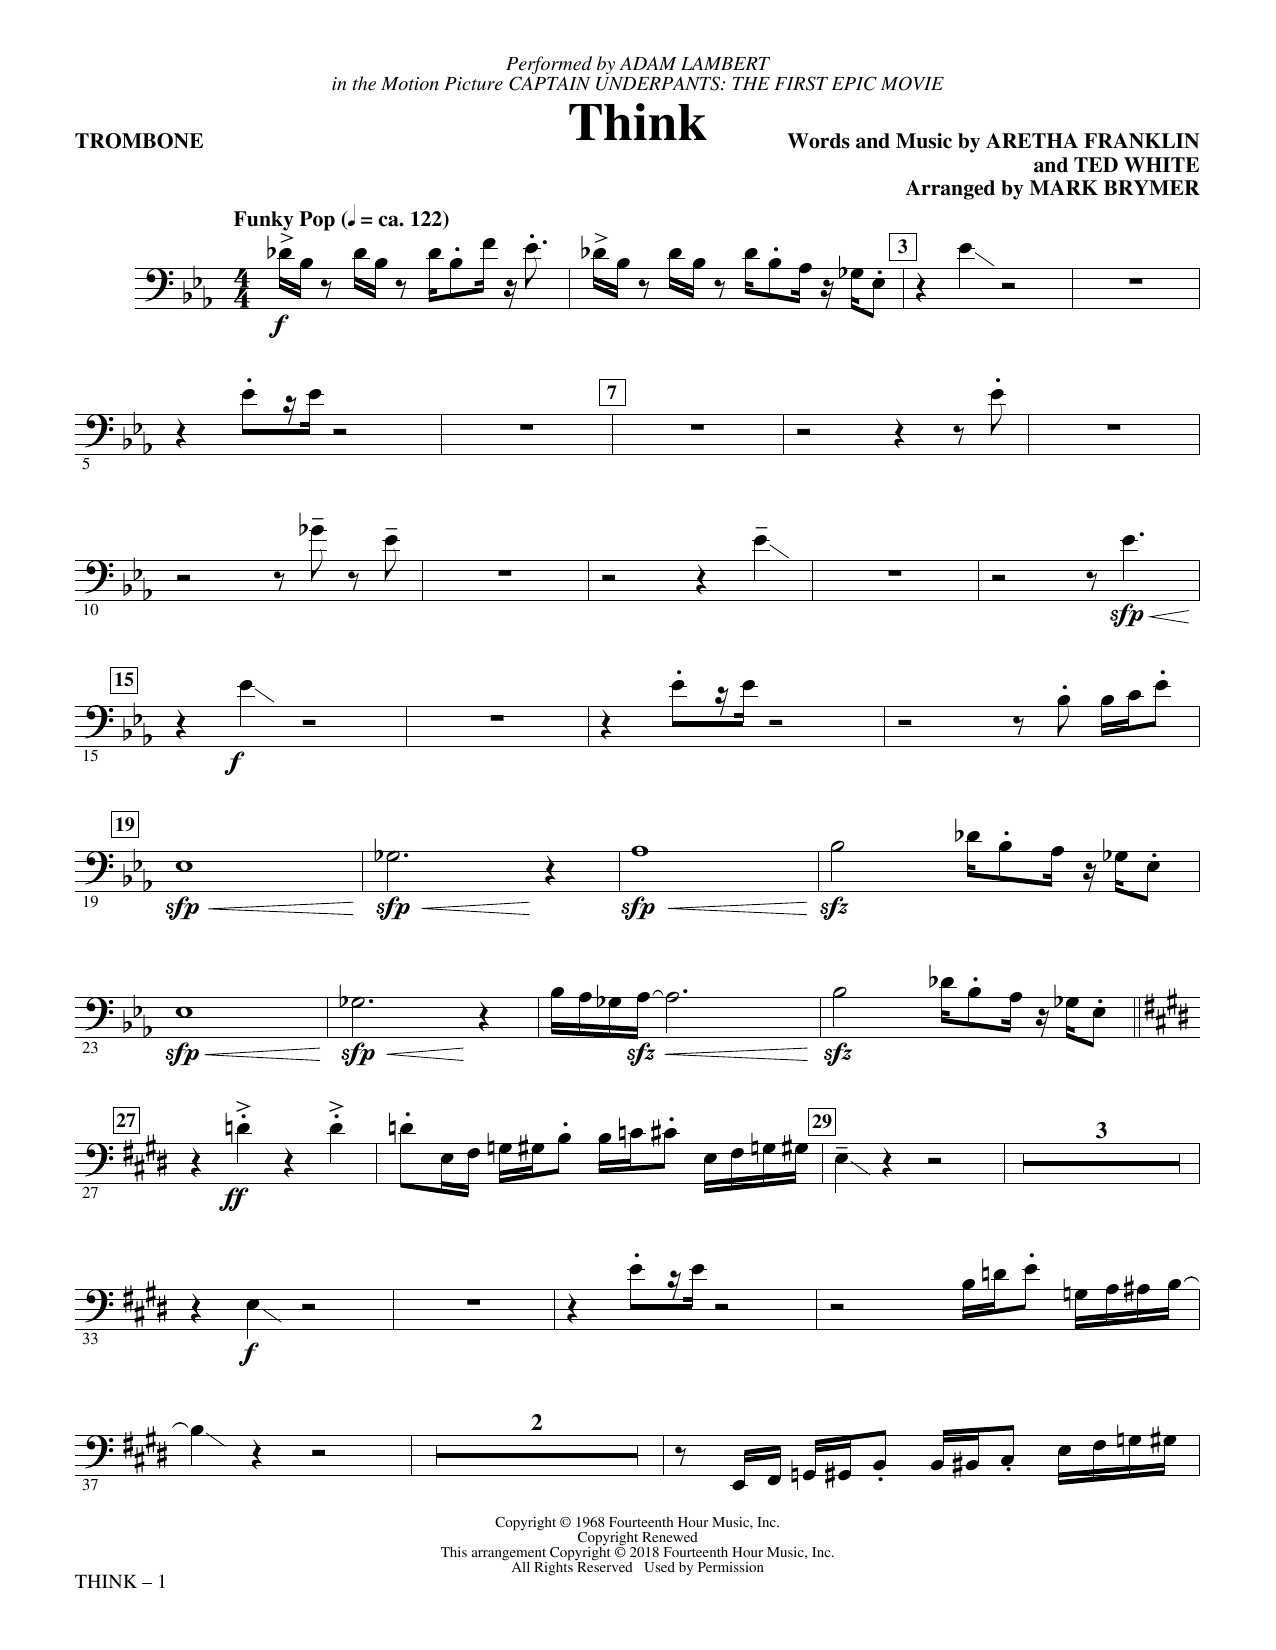 Download Adam Lambert 'Think (from Captain Underpants: The First Epic Movie) (Arr. Mark Brymer) - Trombone' Digital Sheet Music Notes & Chords and start playing in minutes